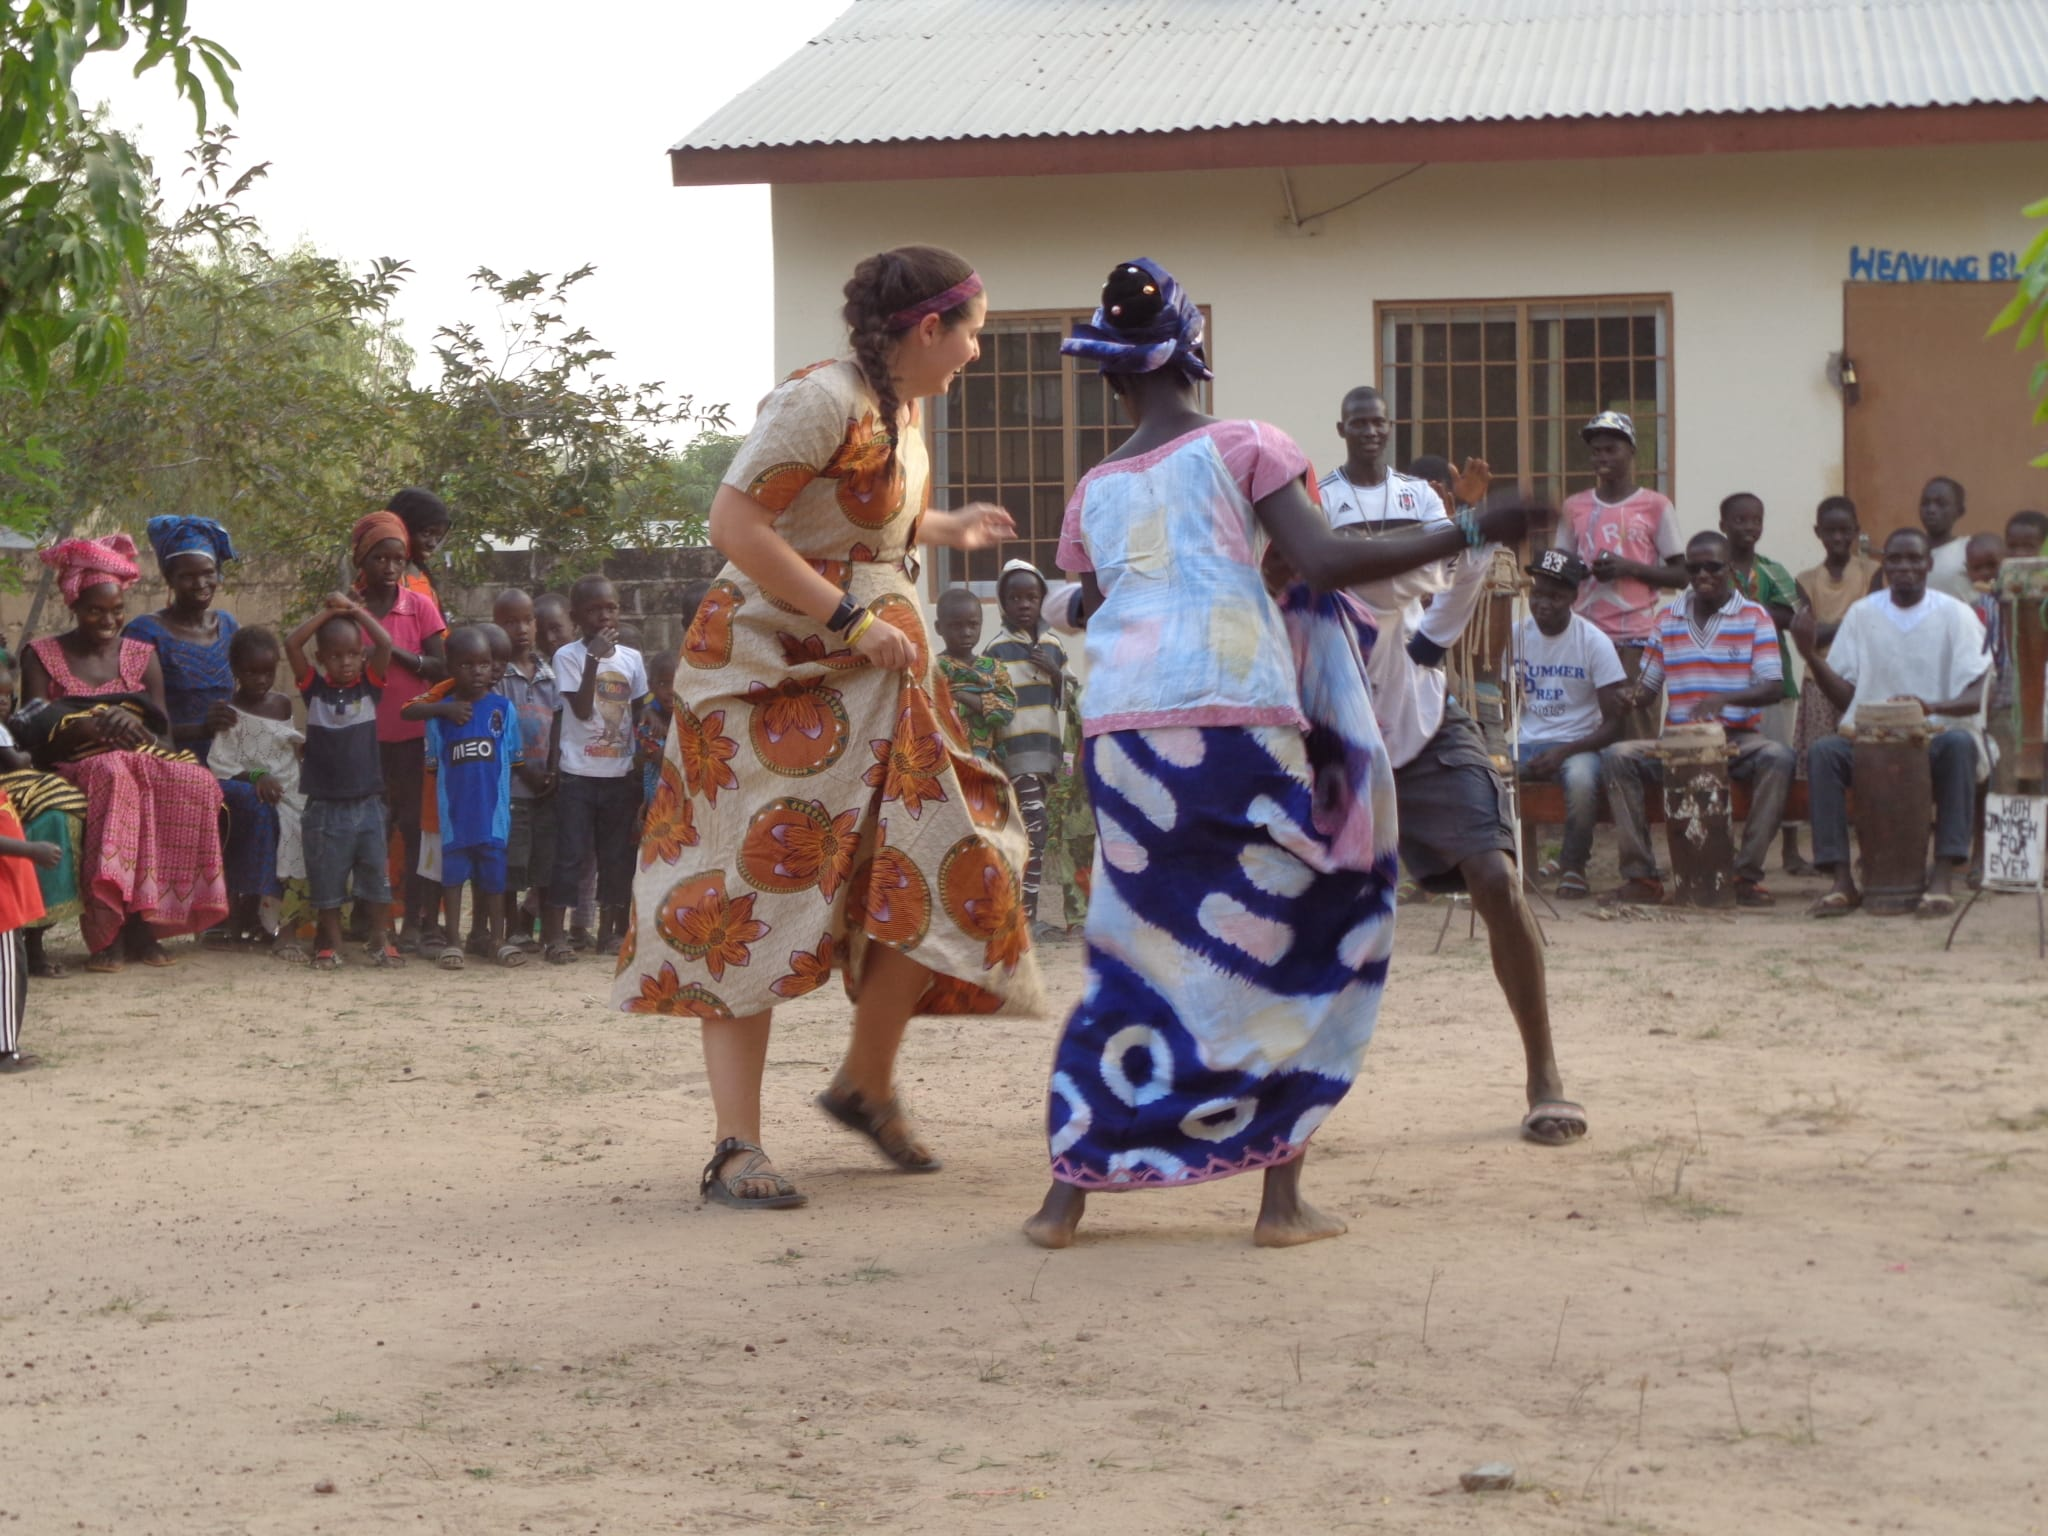 Emily Aebker, the International Project Lead, strengthened her relationship with the community by joining in their dancing.